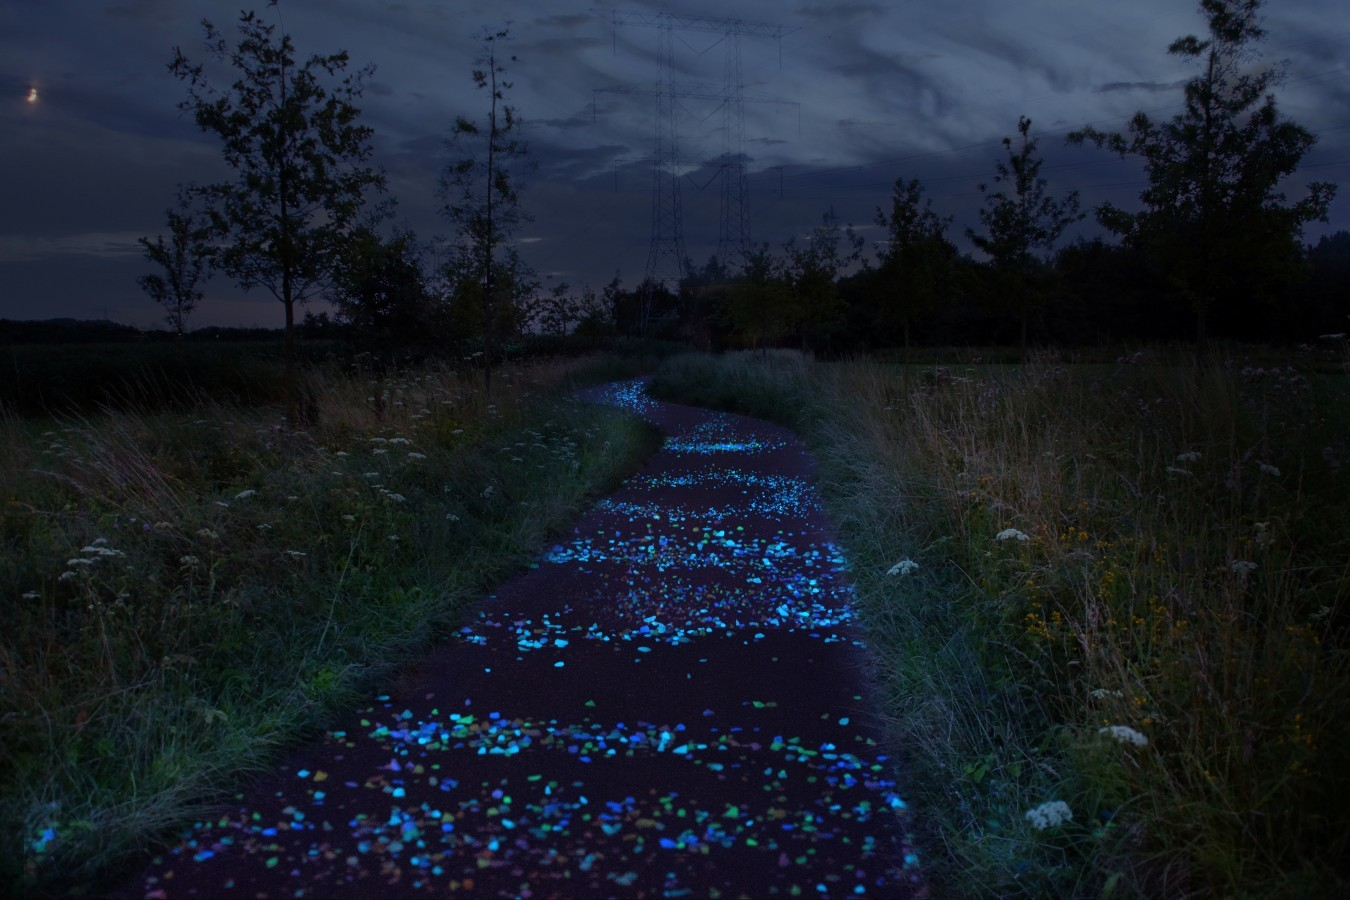 A Glowing Bicycle Path Takes Inspiration from Van Gogh's 'The Starry Night'